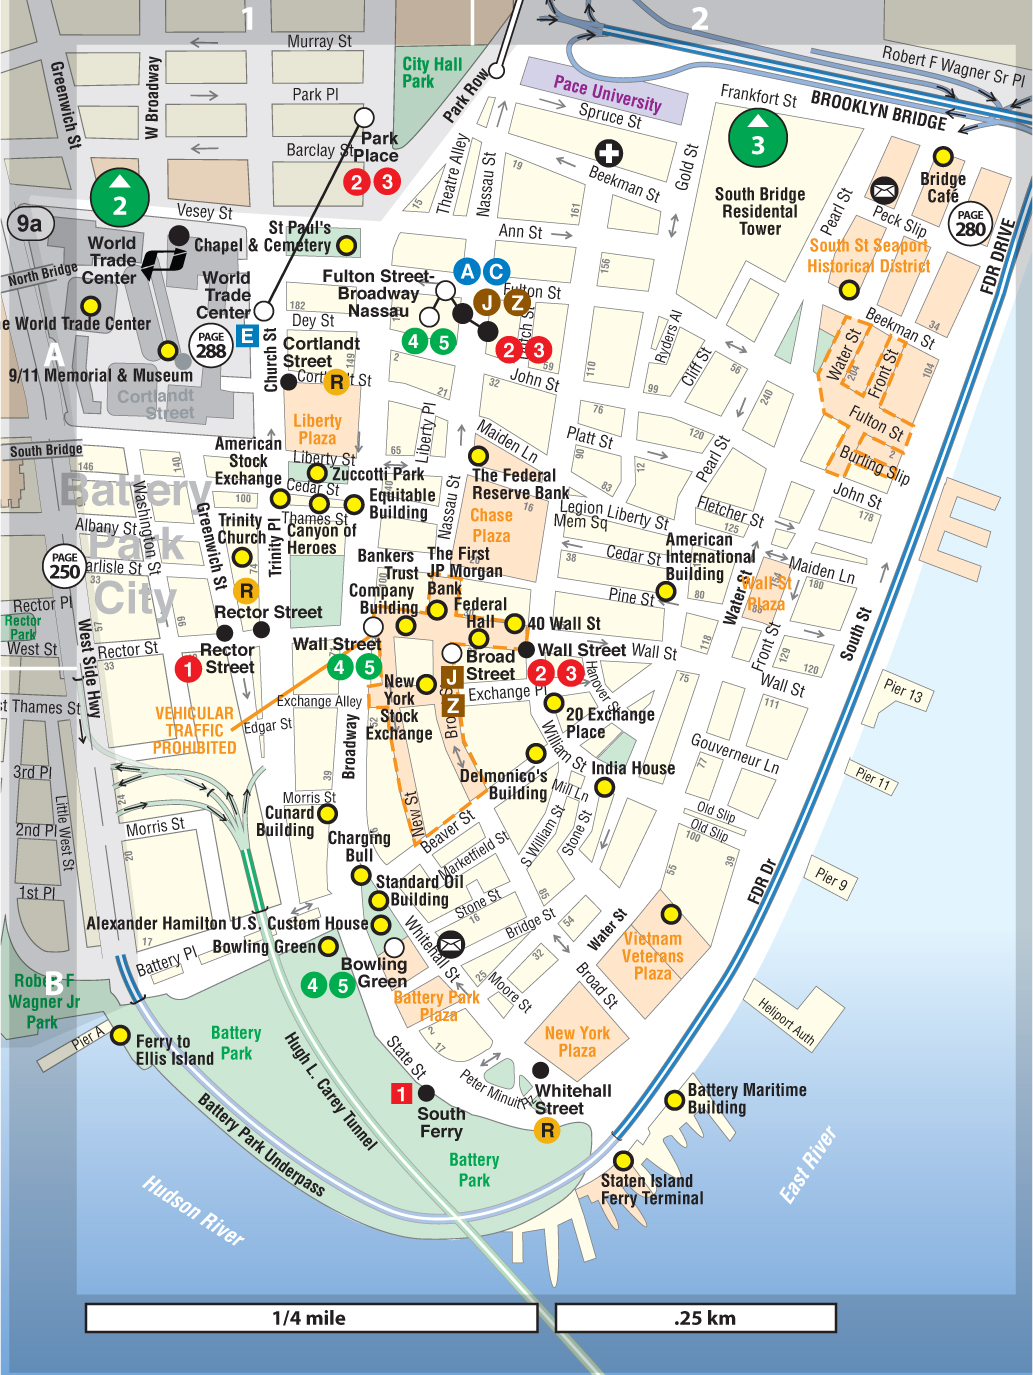 Map Of New York City For Tourists.Financial District Not For Tourists Guide To New York City Not